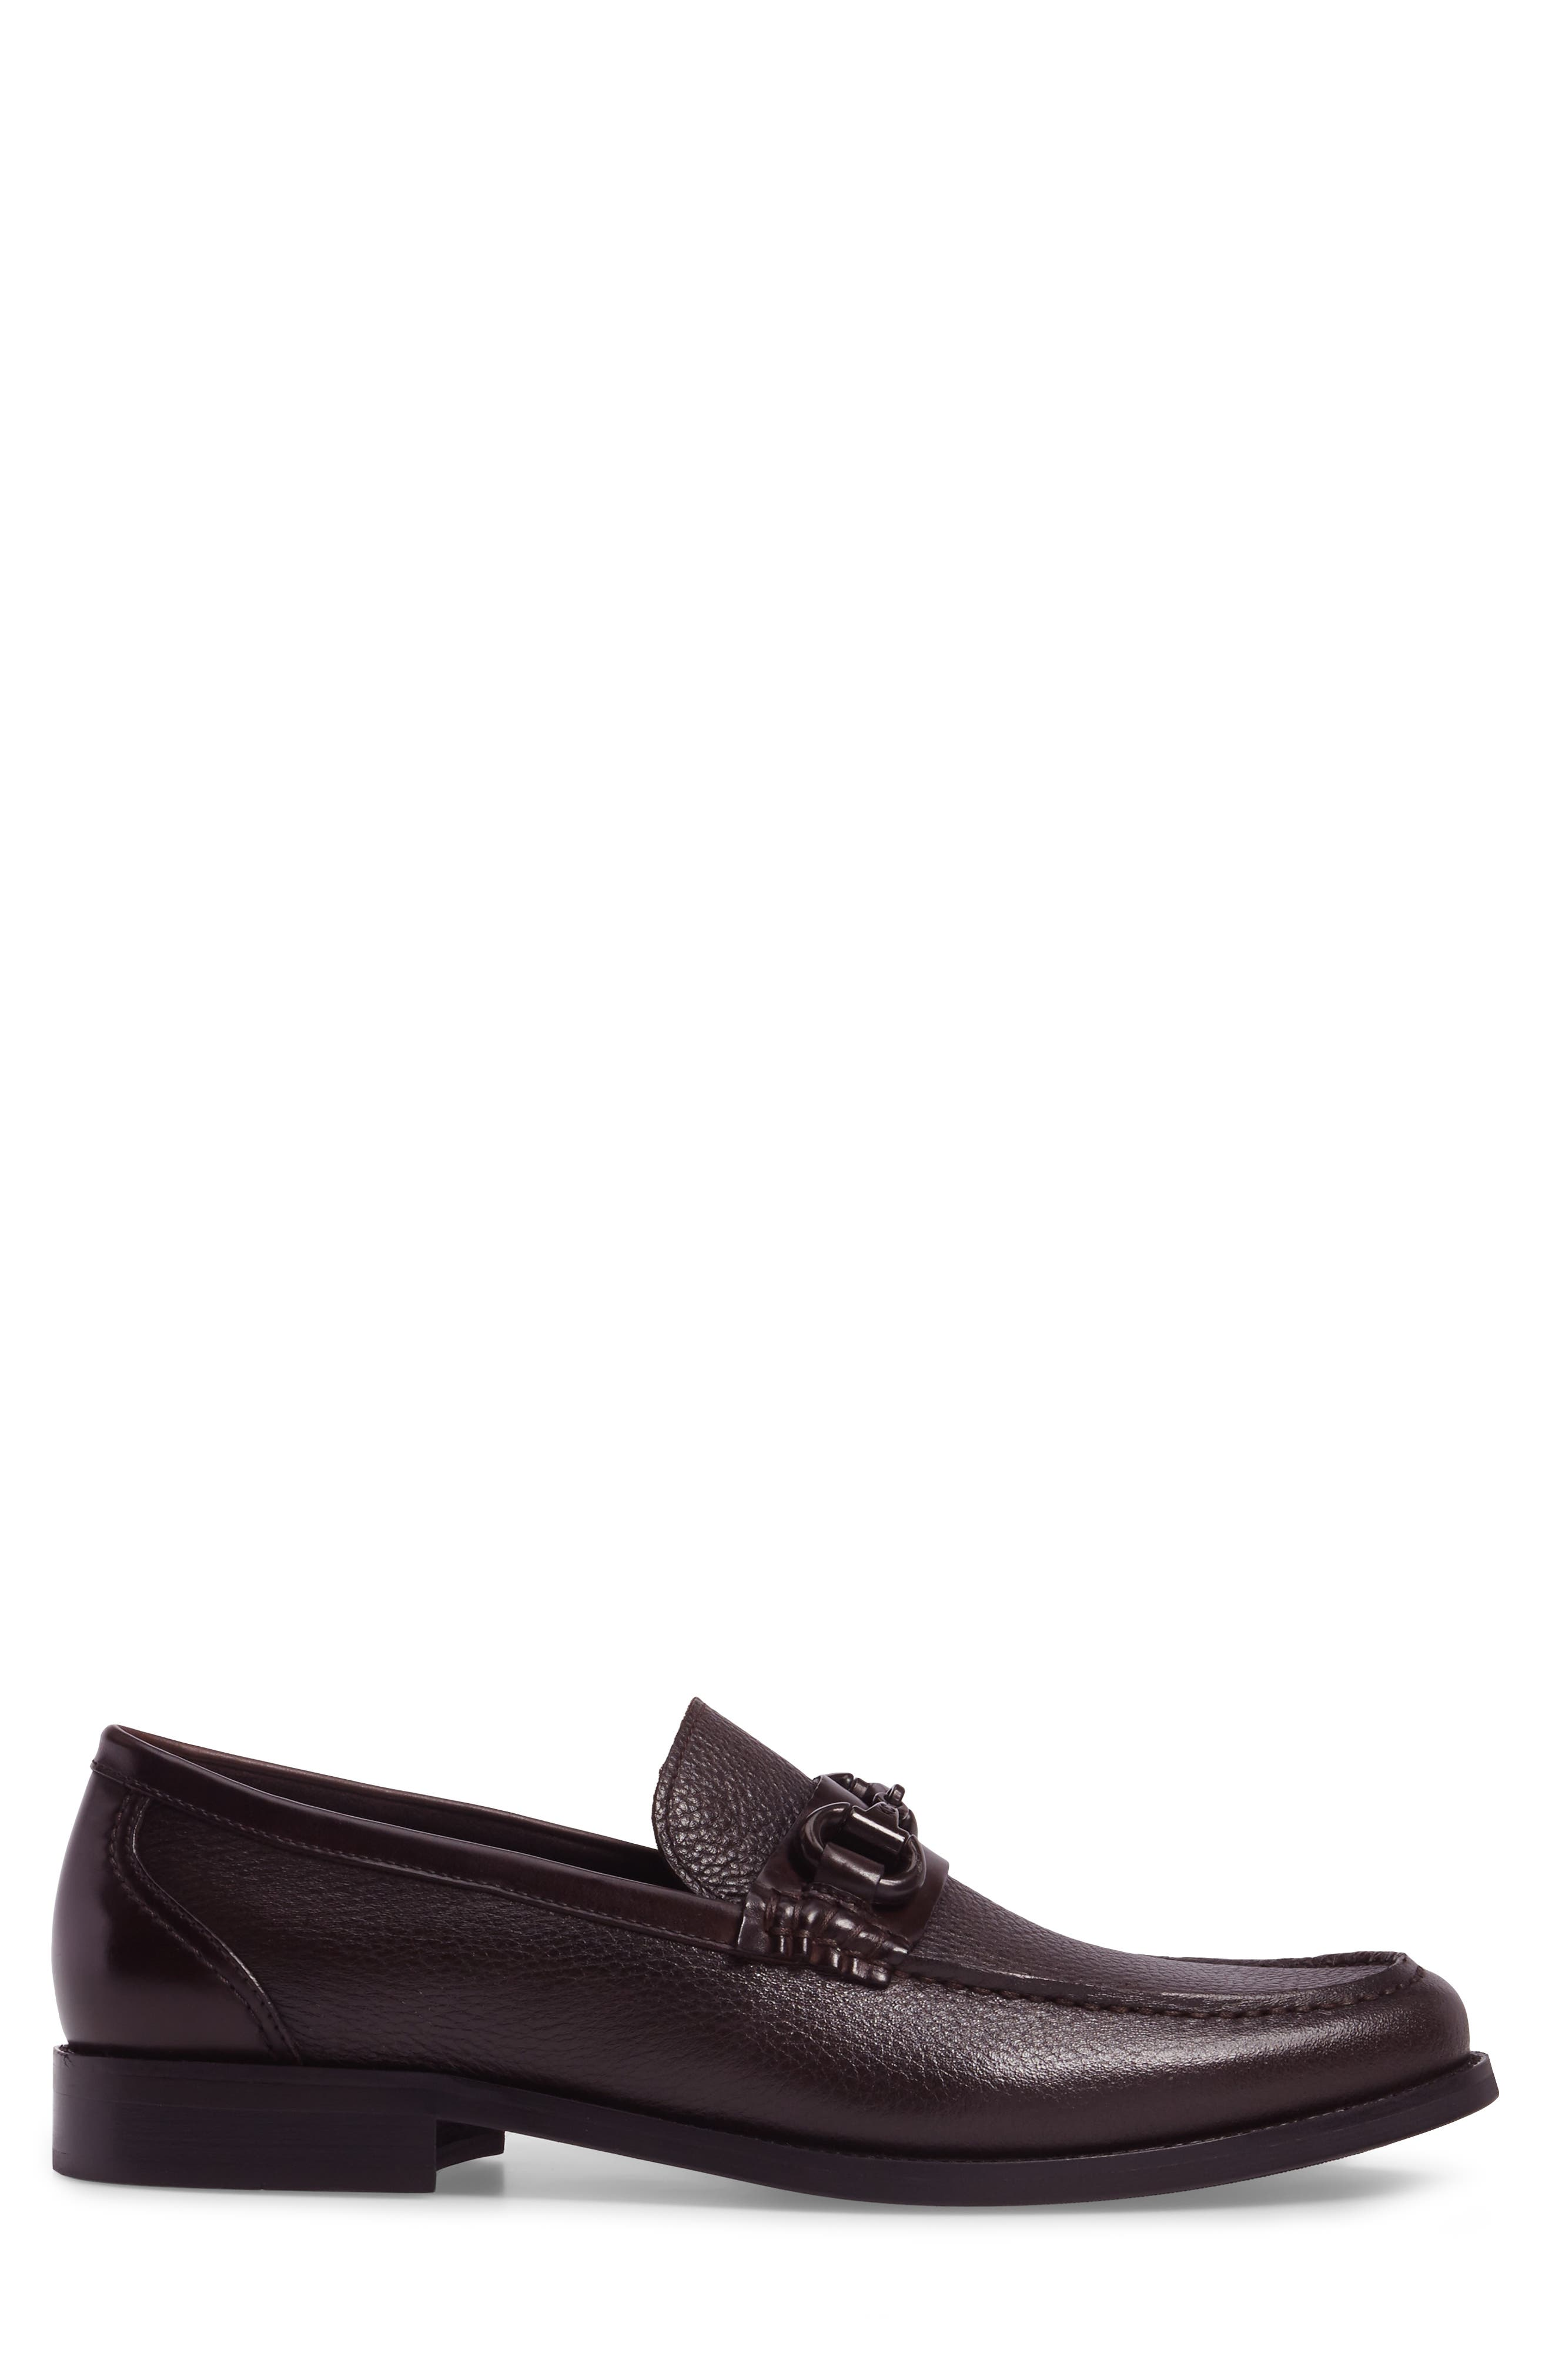 Alternate Image 3  - Kenneth Cole New York Bit Loafer (Men)